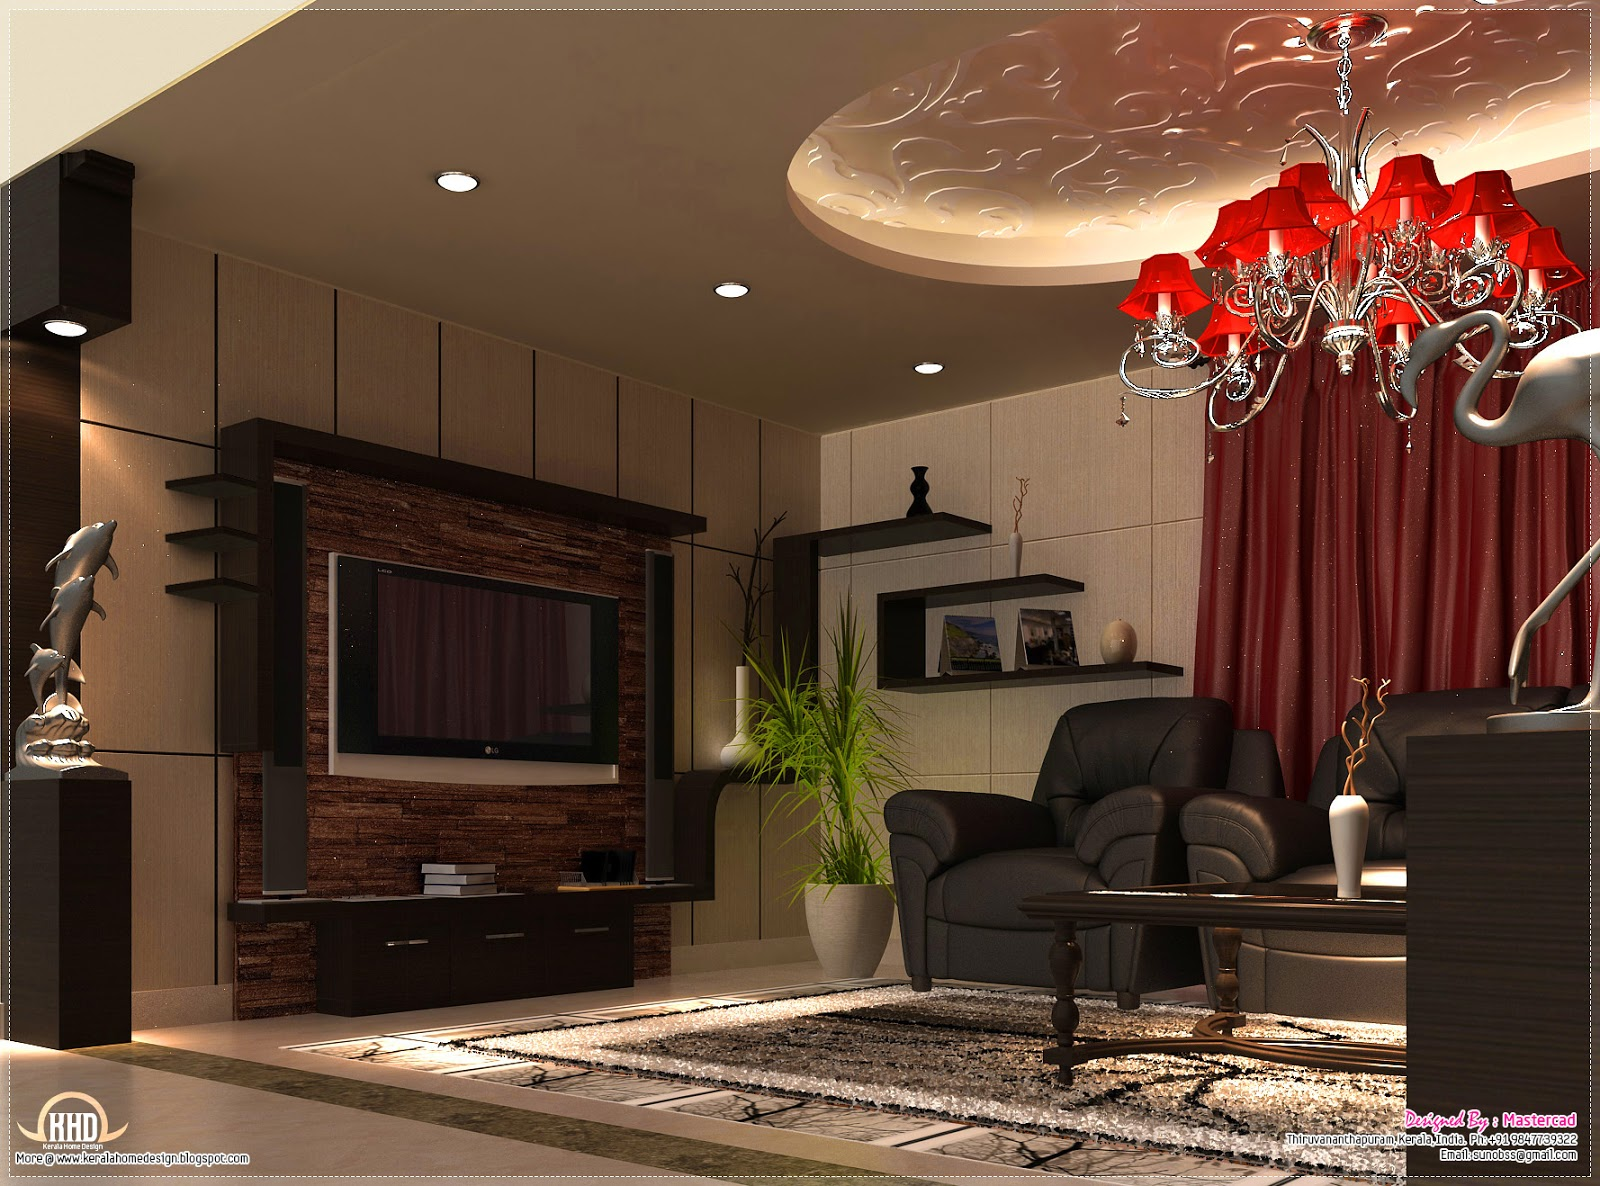 Interior design ideas kerala home design and floor plans for House living room interior design